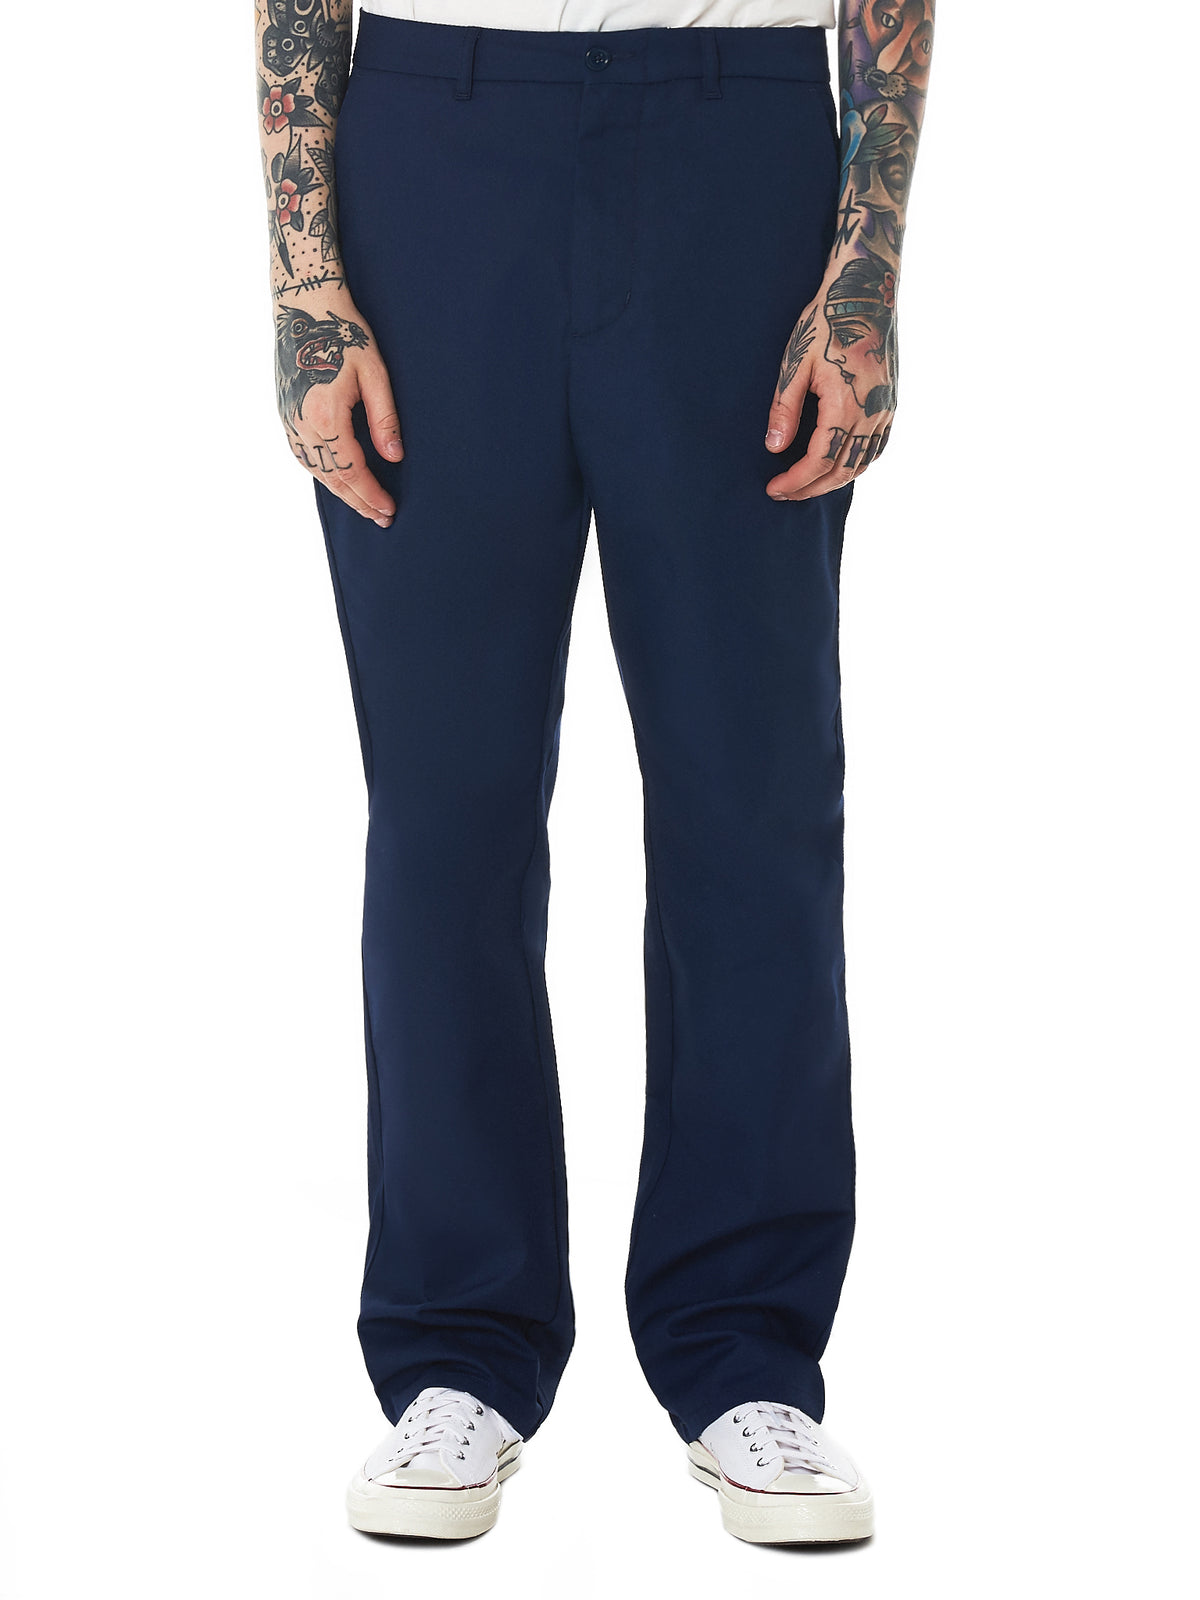 Napa by Martine Rose Trousers - Hlorenzo Front